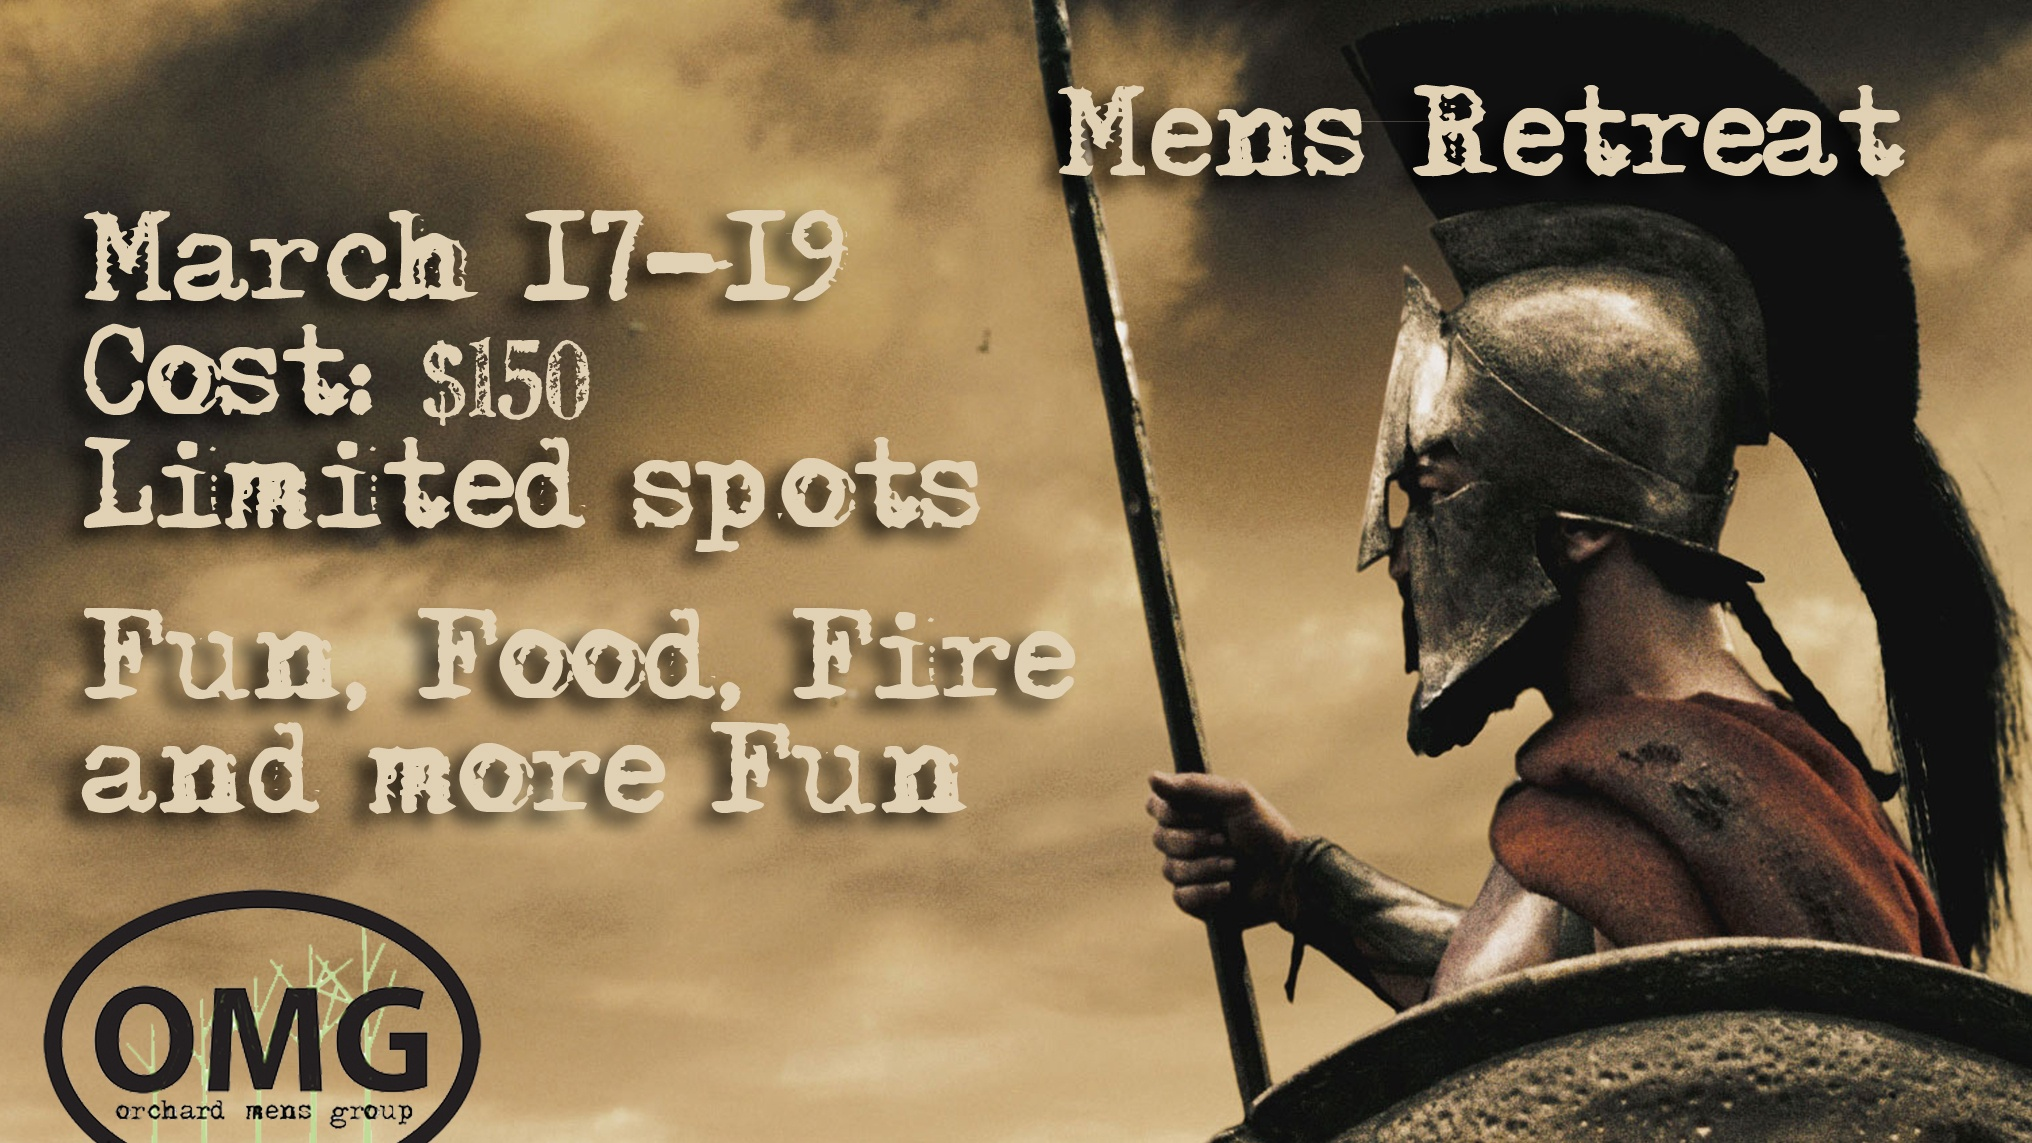 MensRetreat_web